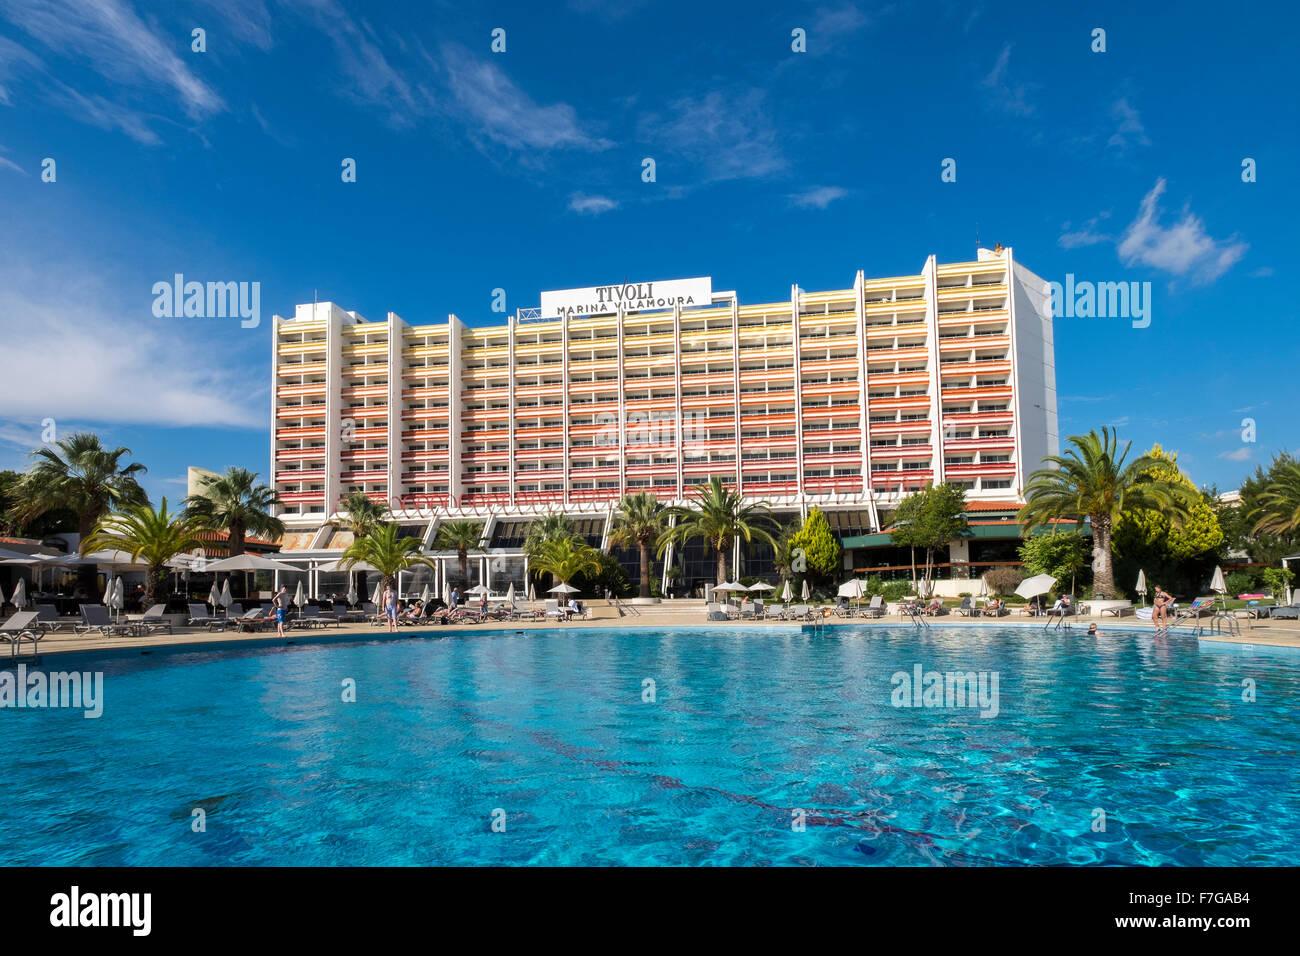 Tivoli Hotels In The Algarve The Hotel Tivoli Marina Vilamoura Portugal Stock Photo